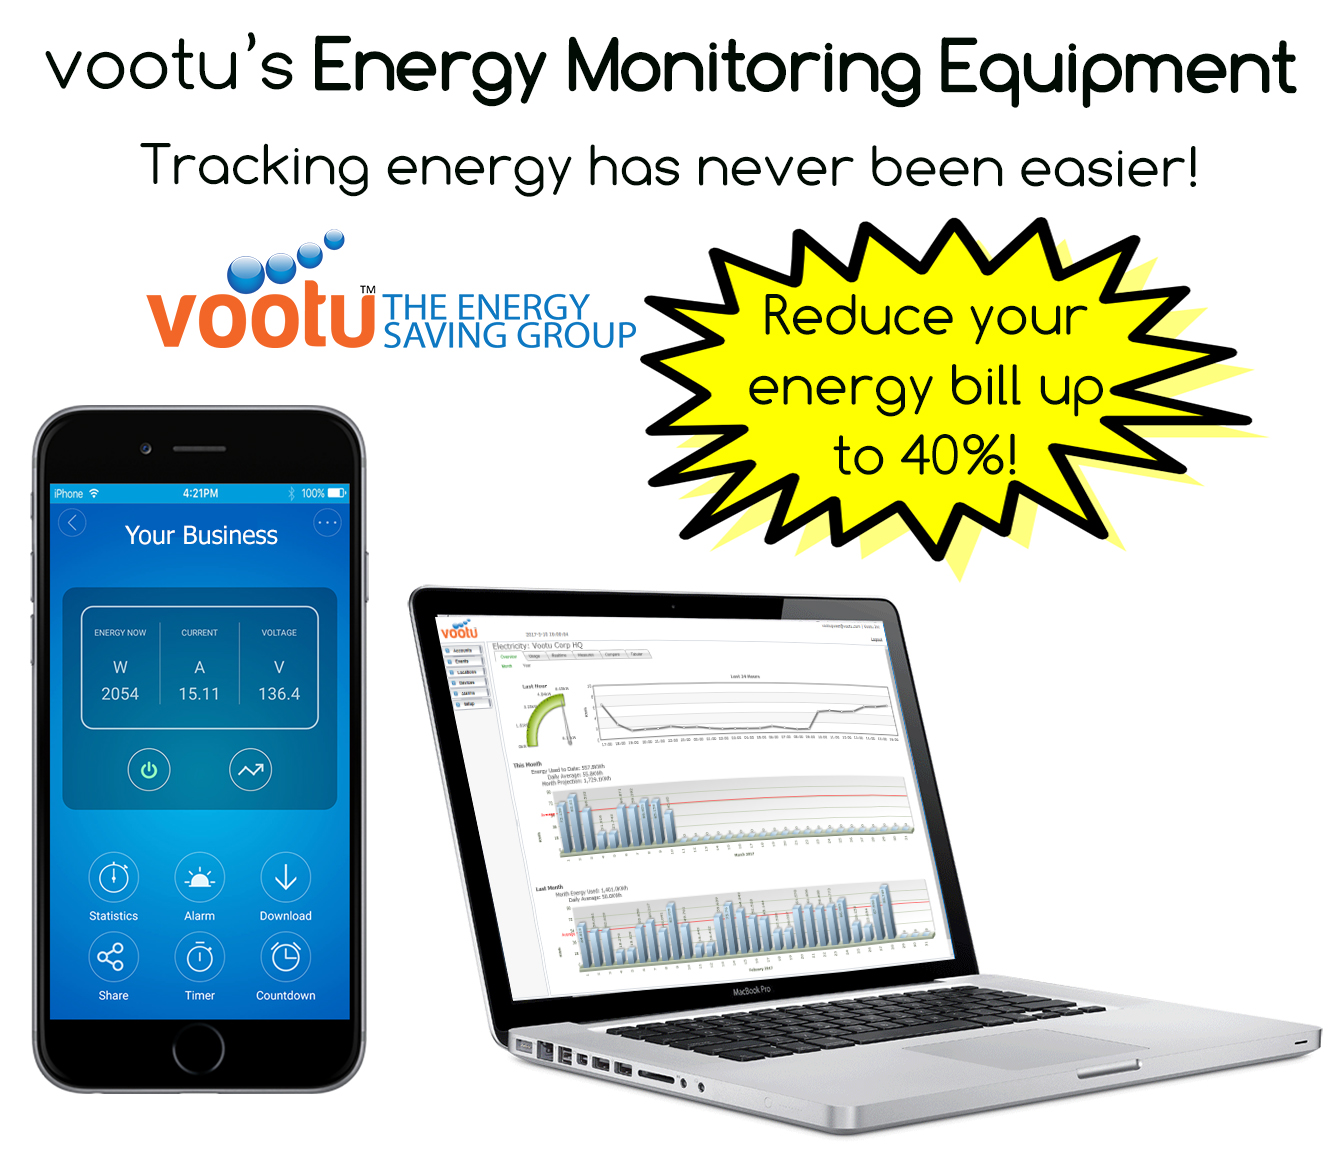 Why you need Energy Monitoring Equipment